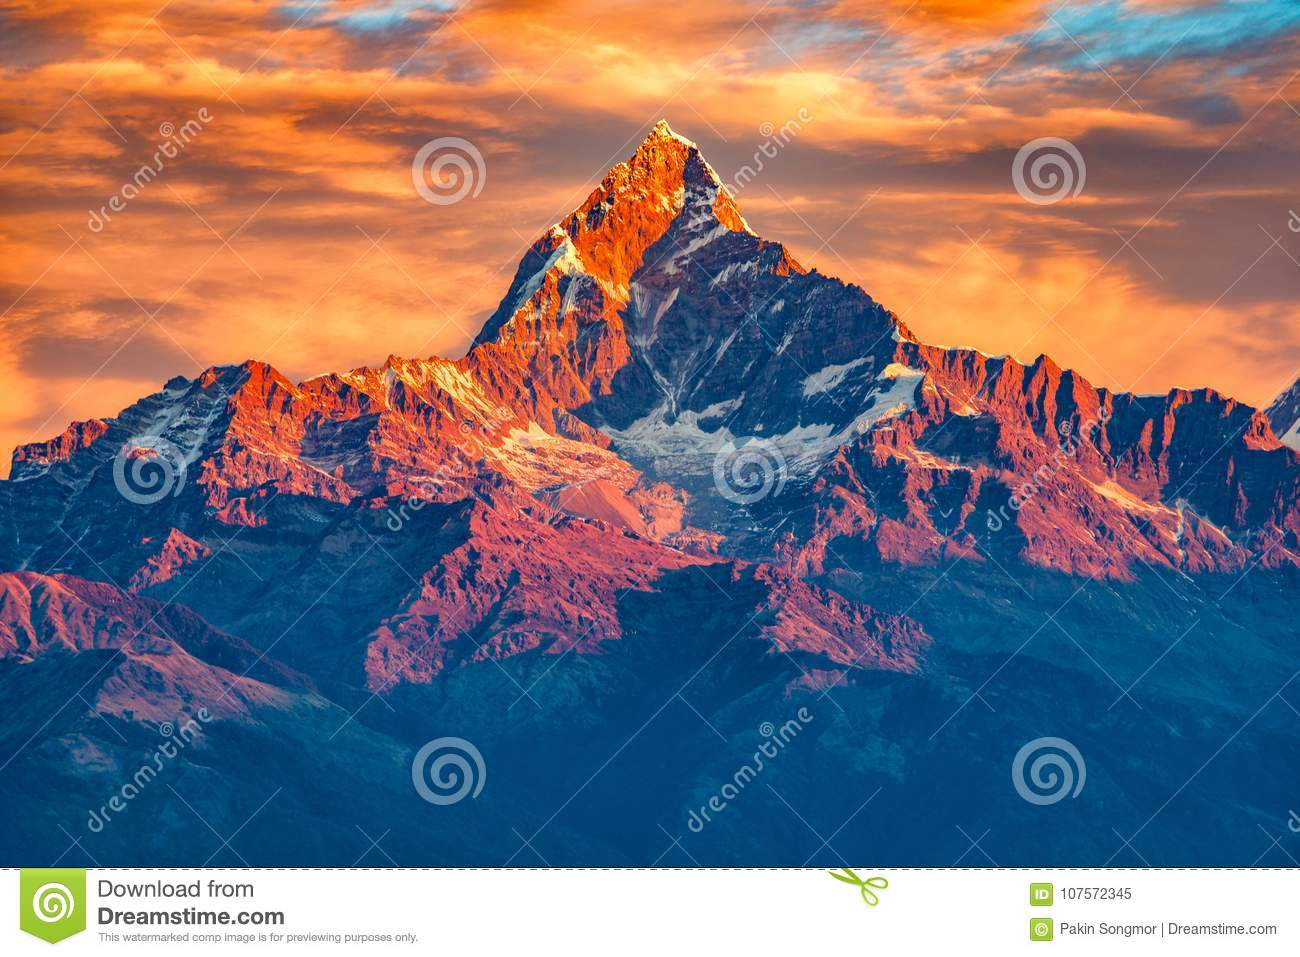 Beautifull cloudy sunrise in the mountains with snow ridge fron Himalaya view point